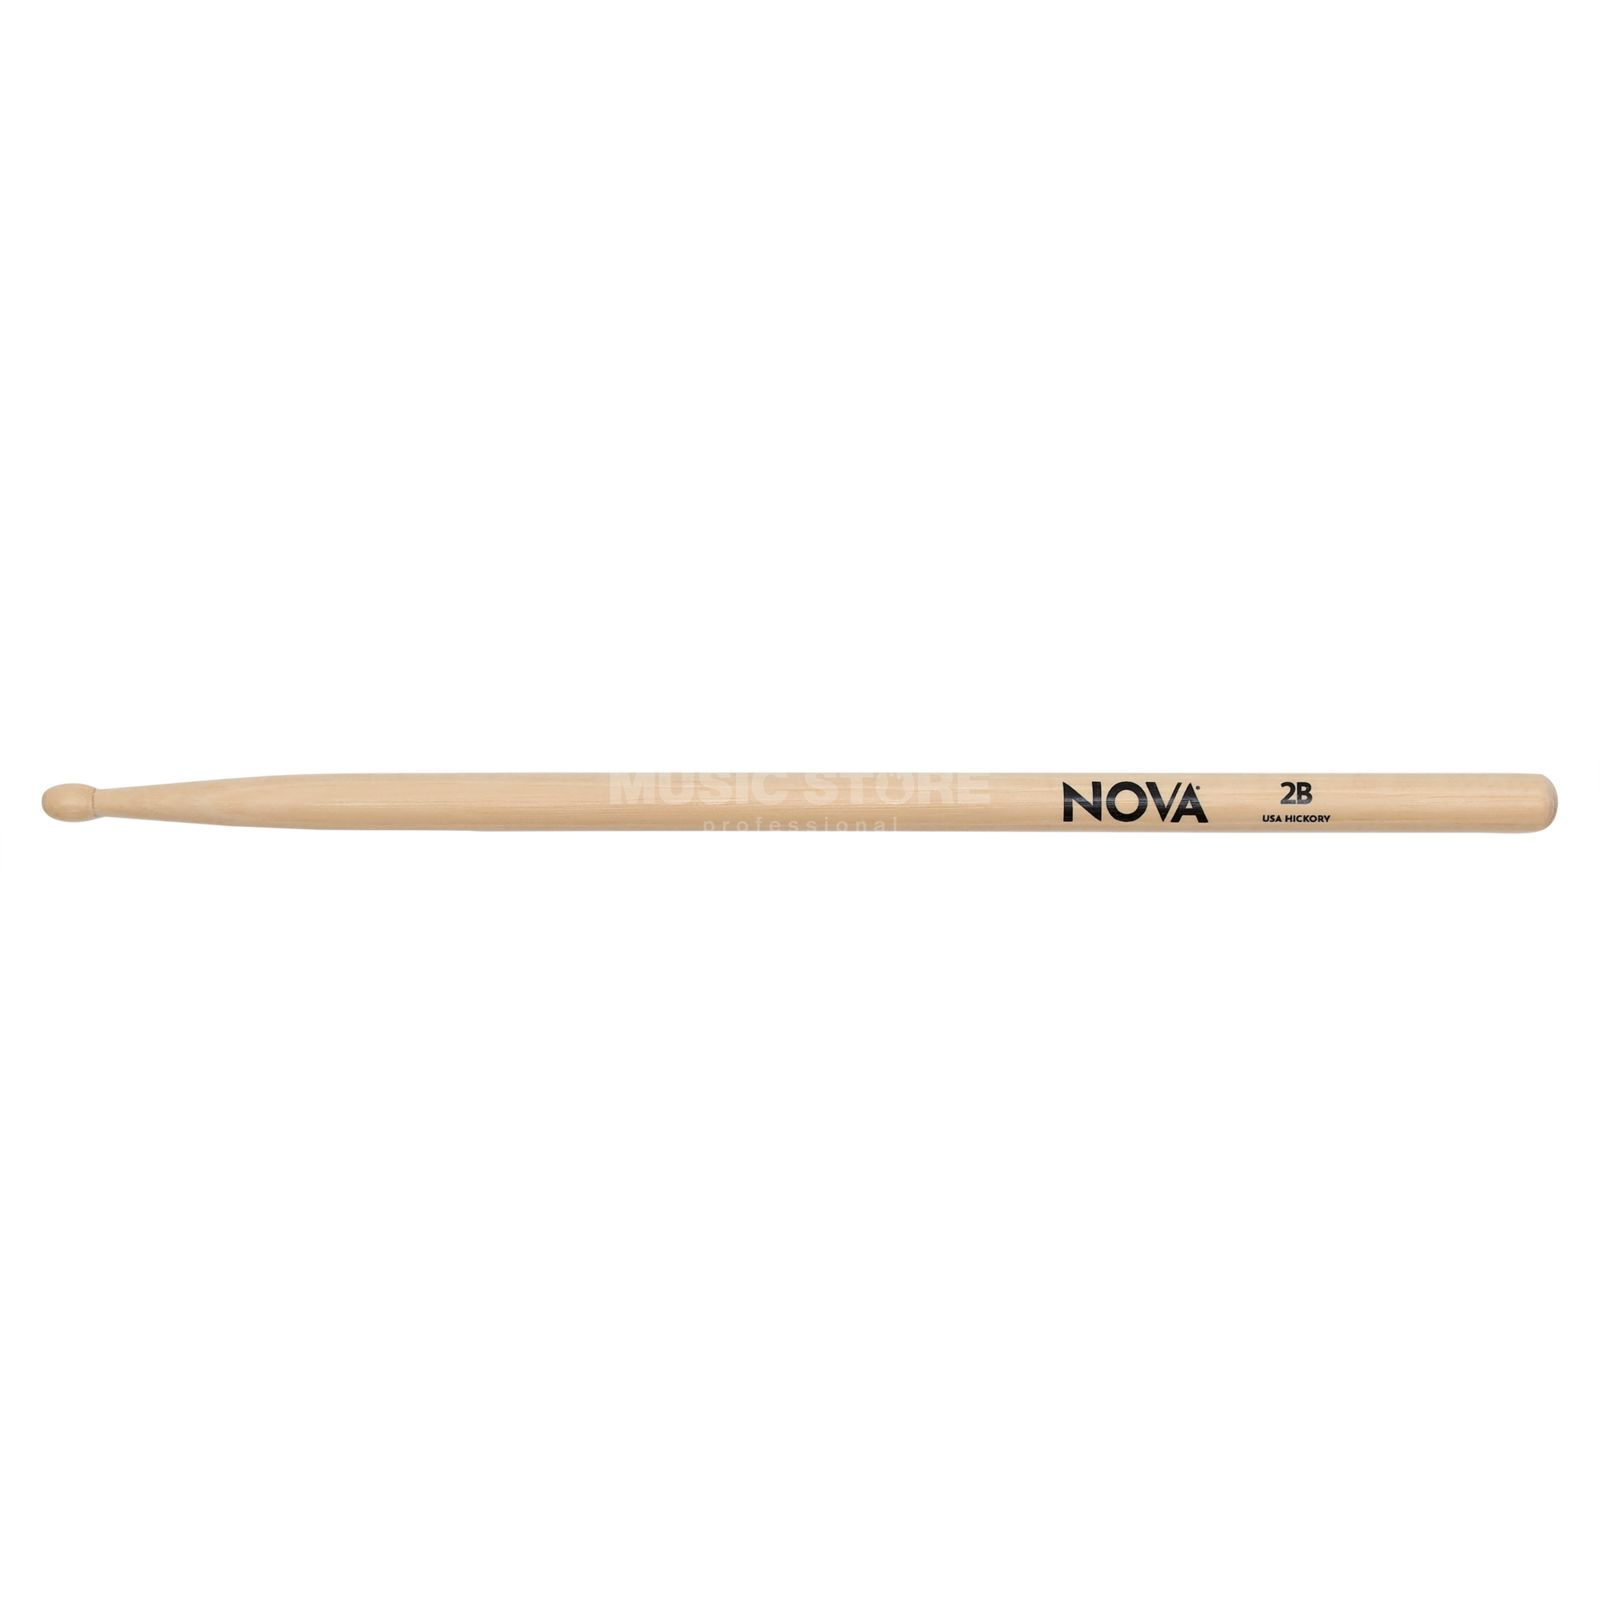 Vic-Firth Nova Drum Sticks 2B, Wood Tip Produktbild